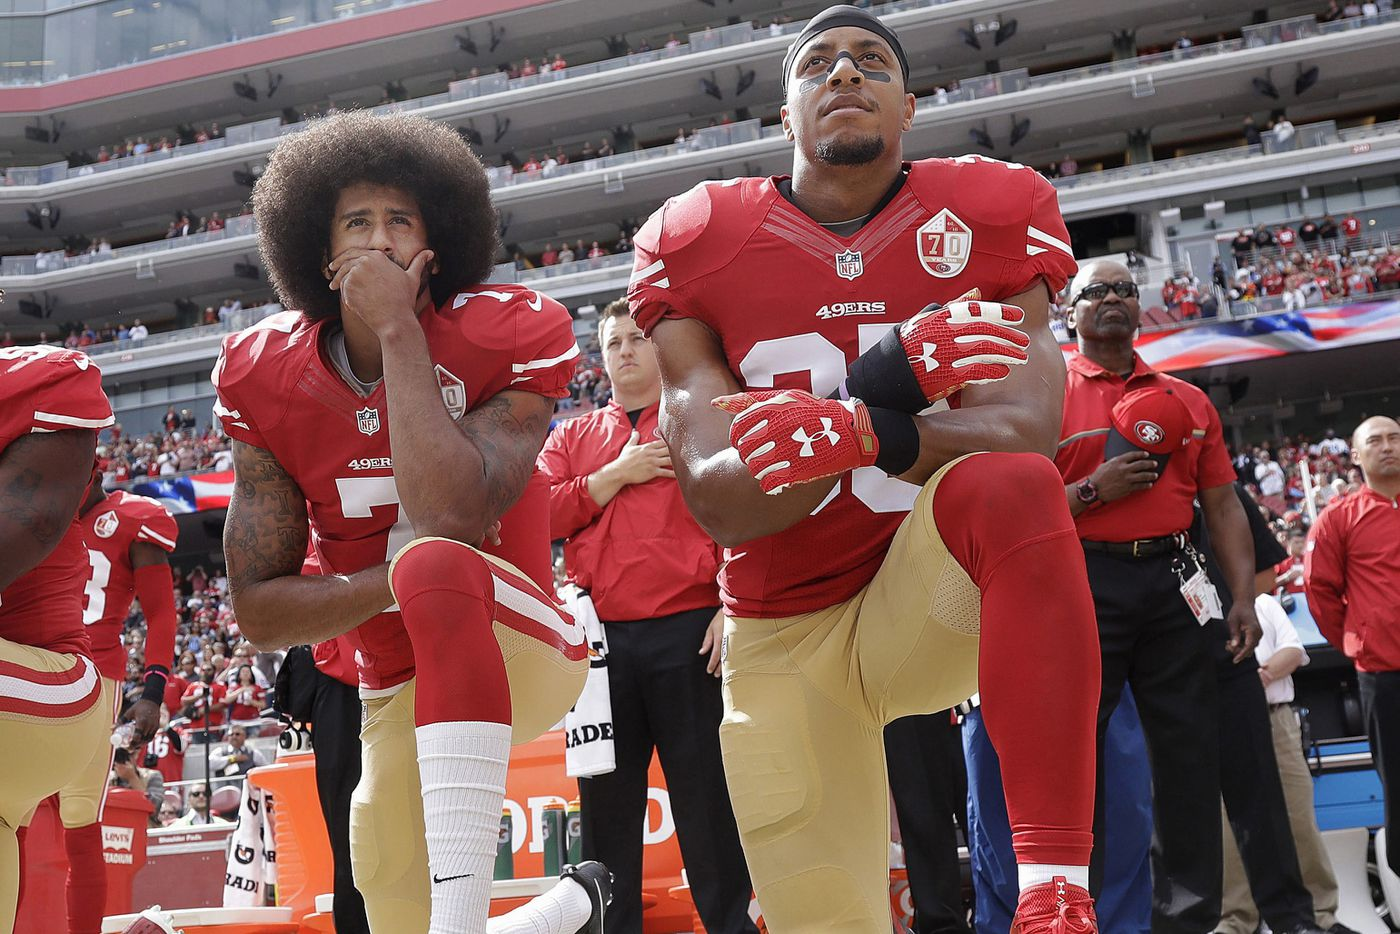 On Colin Kaepernick, burning Nikes, and the nature of the debate | David Murphy